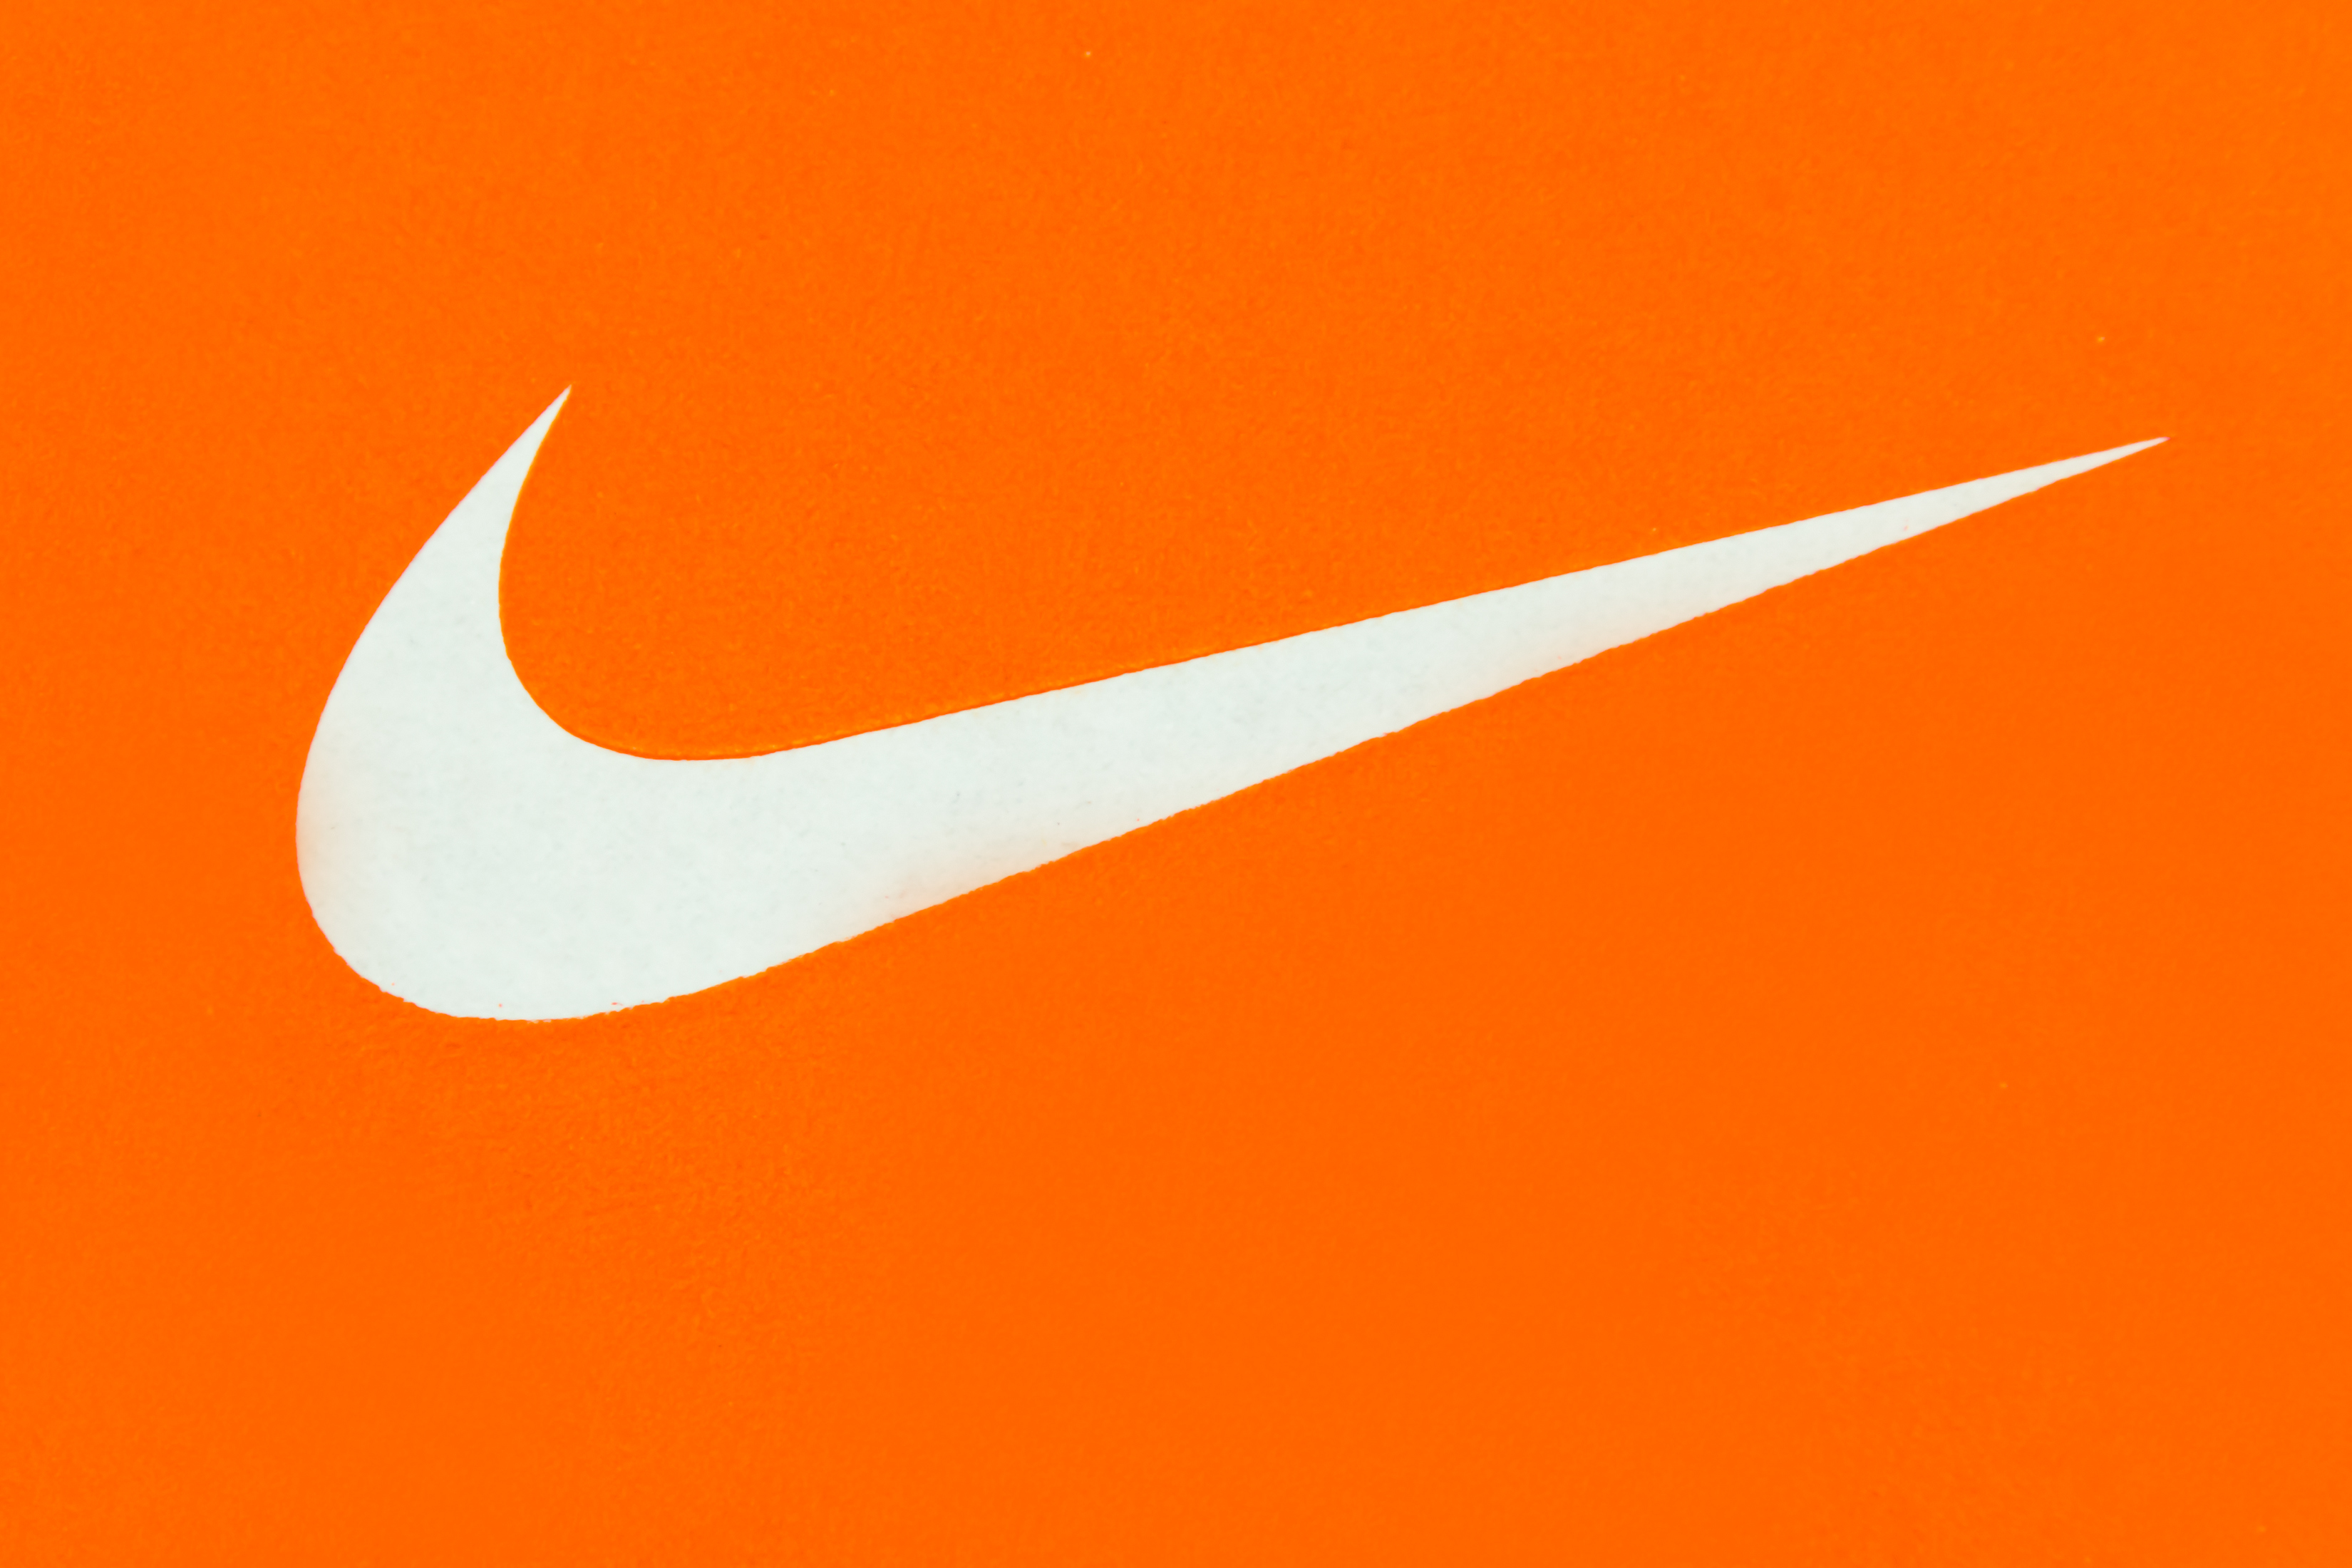 wallpaper nike signs - photo #23